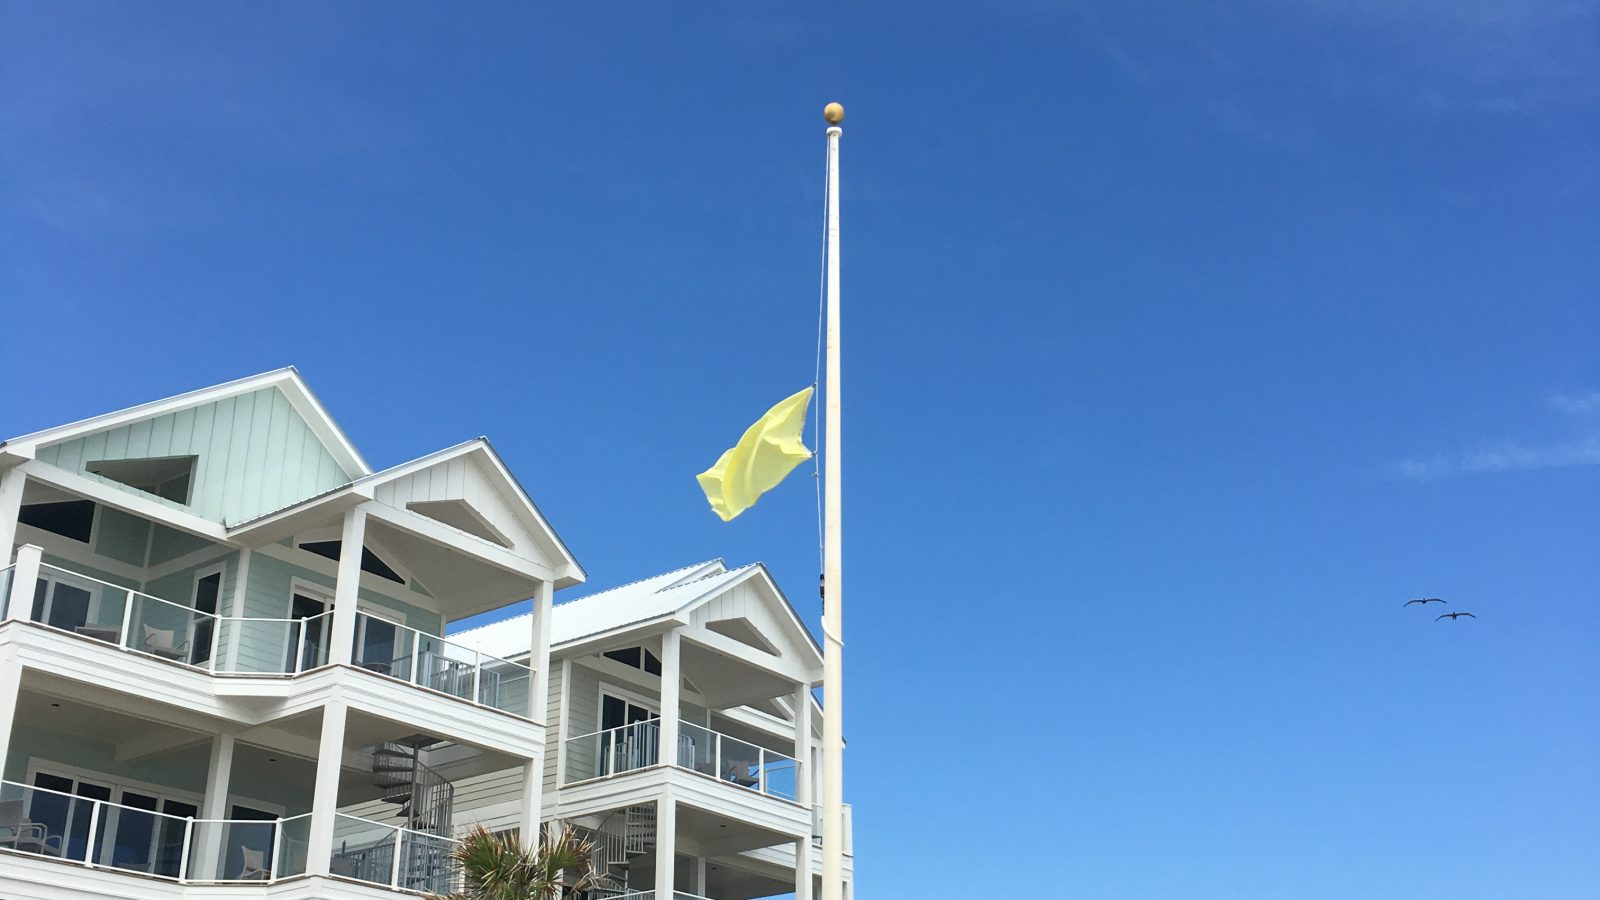 Beach Access Flag